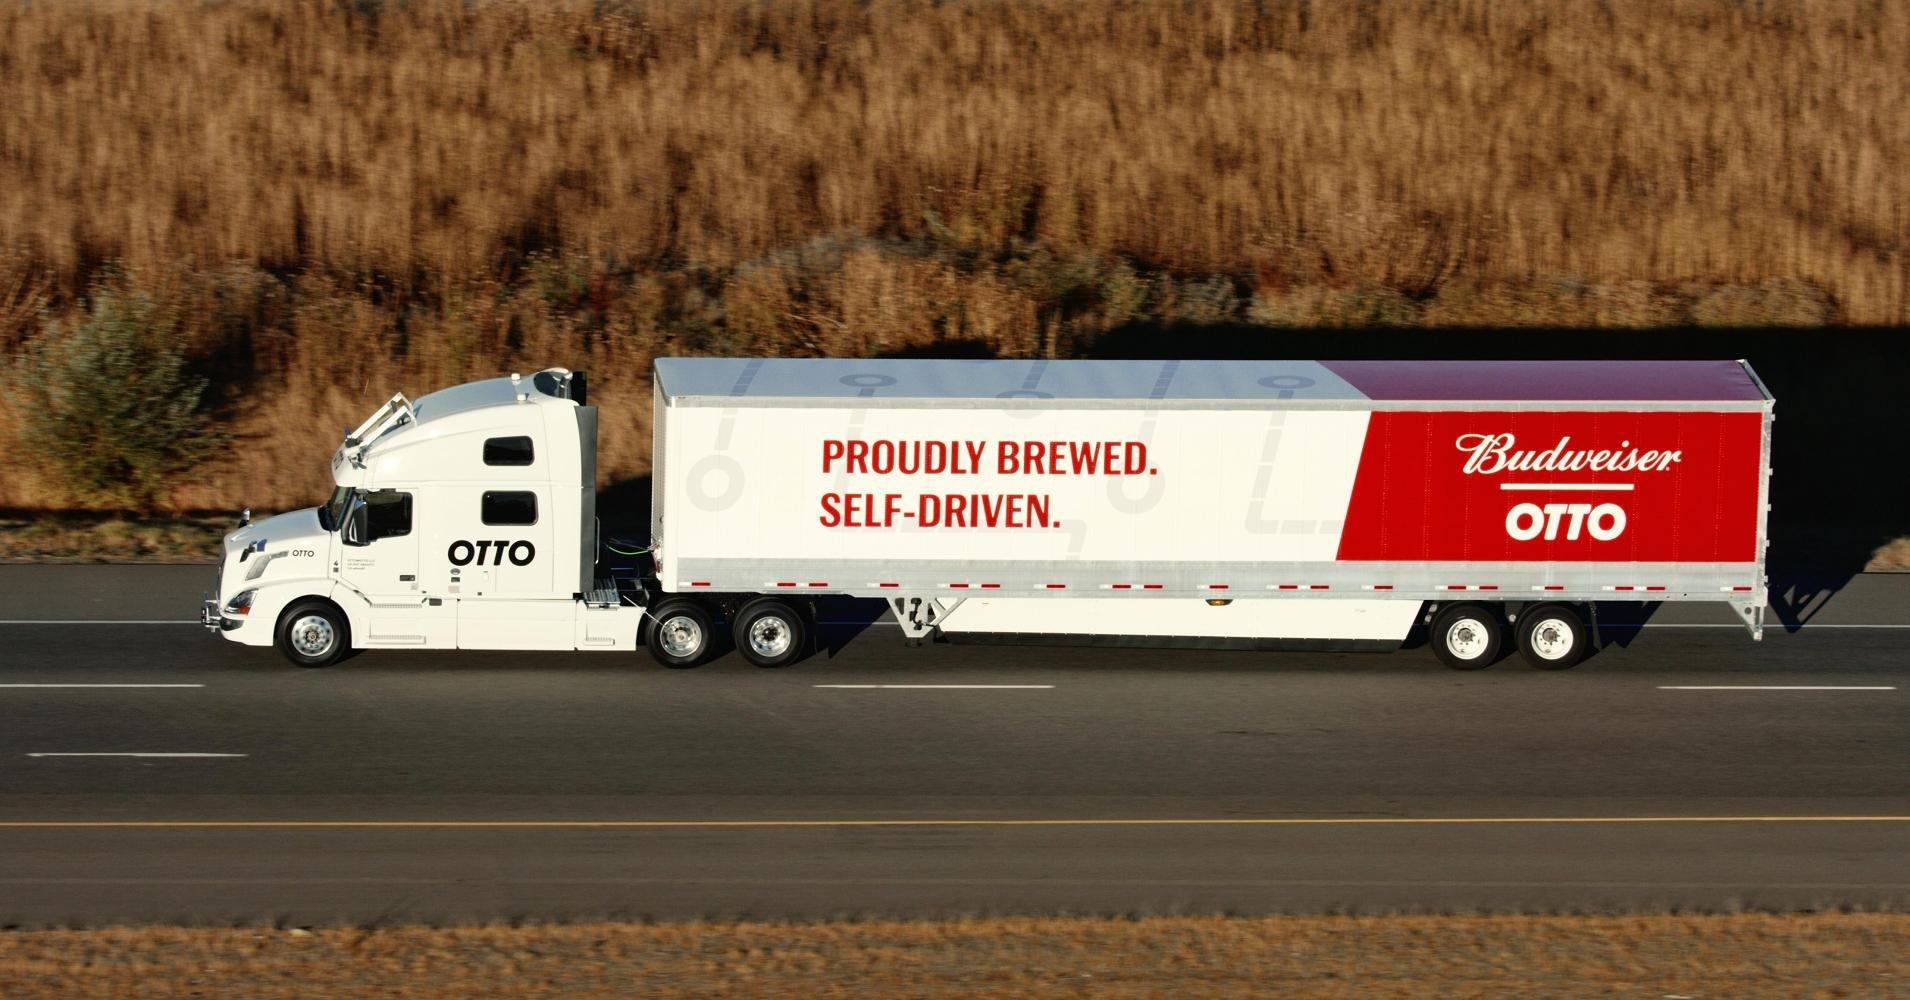 'Driverless' beer run; Bud makes shipment with self-driving truck